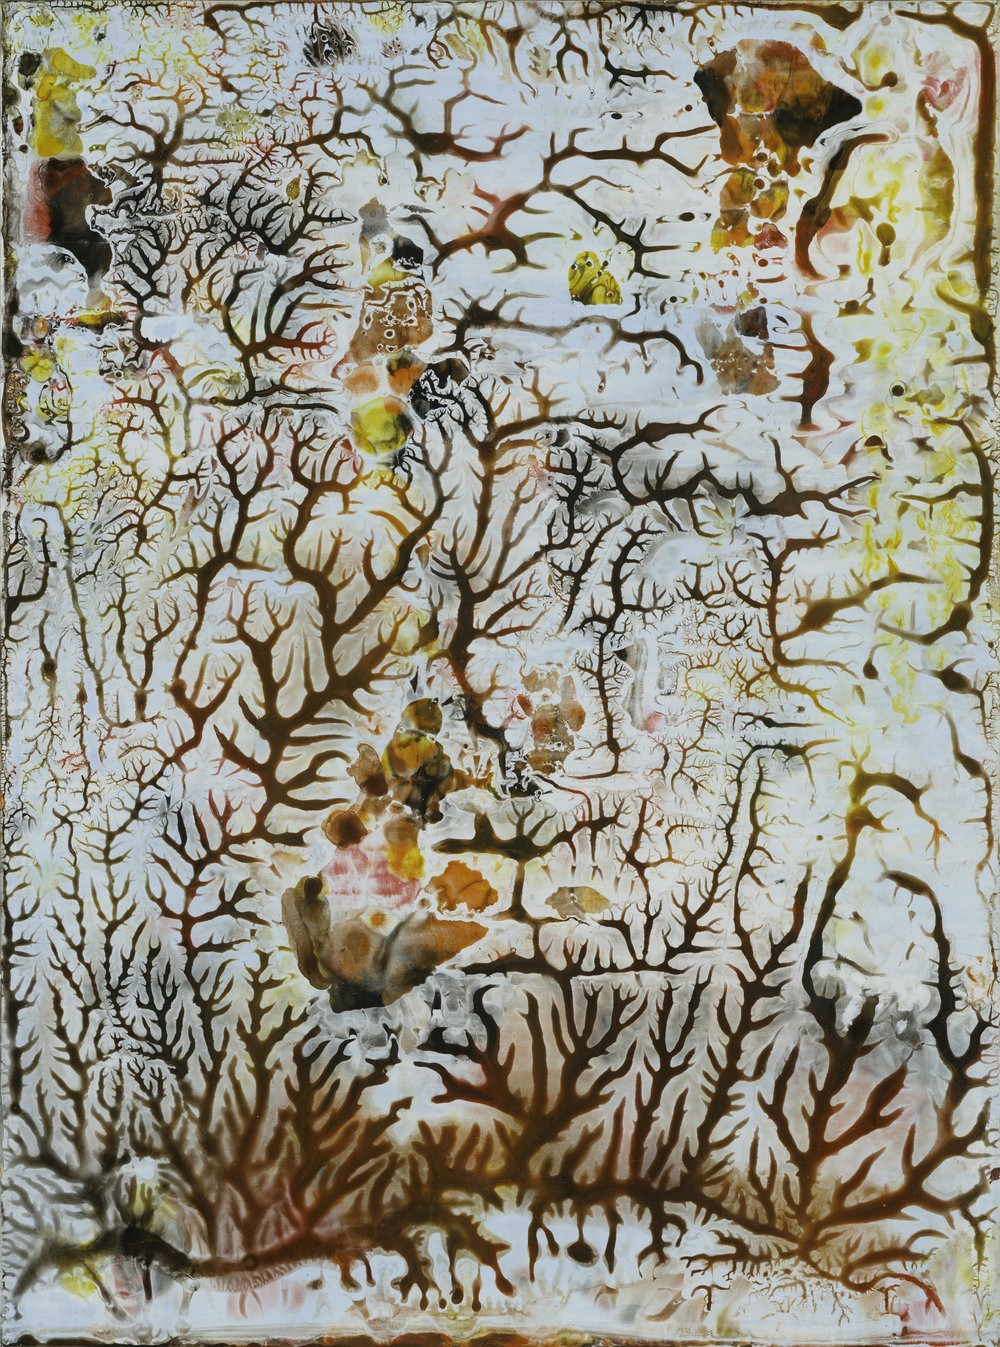 Karen Barth,  End of Autumn,  2015, Archival pigment on paper, mounted on panel, 48″ x 36″